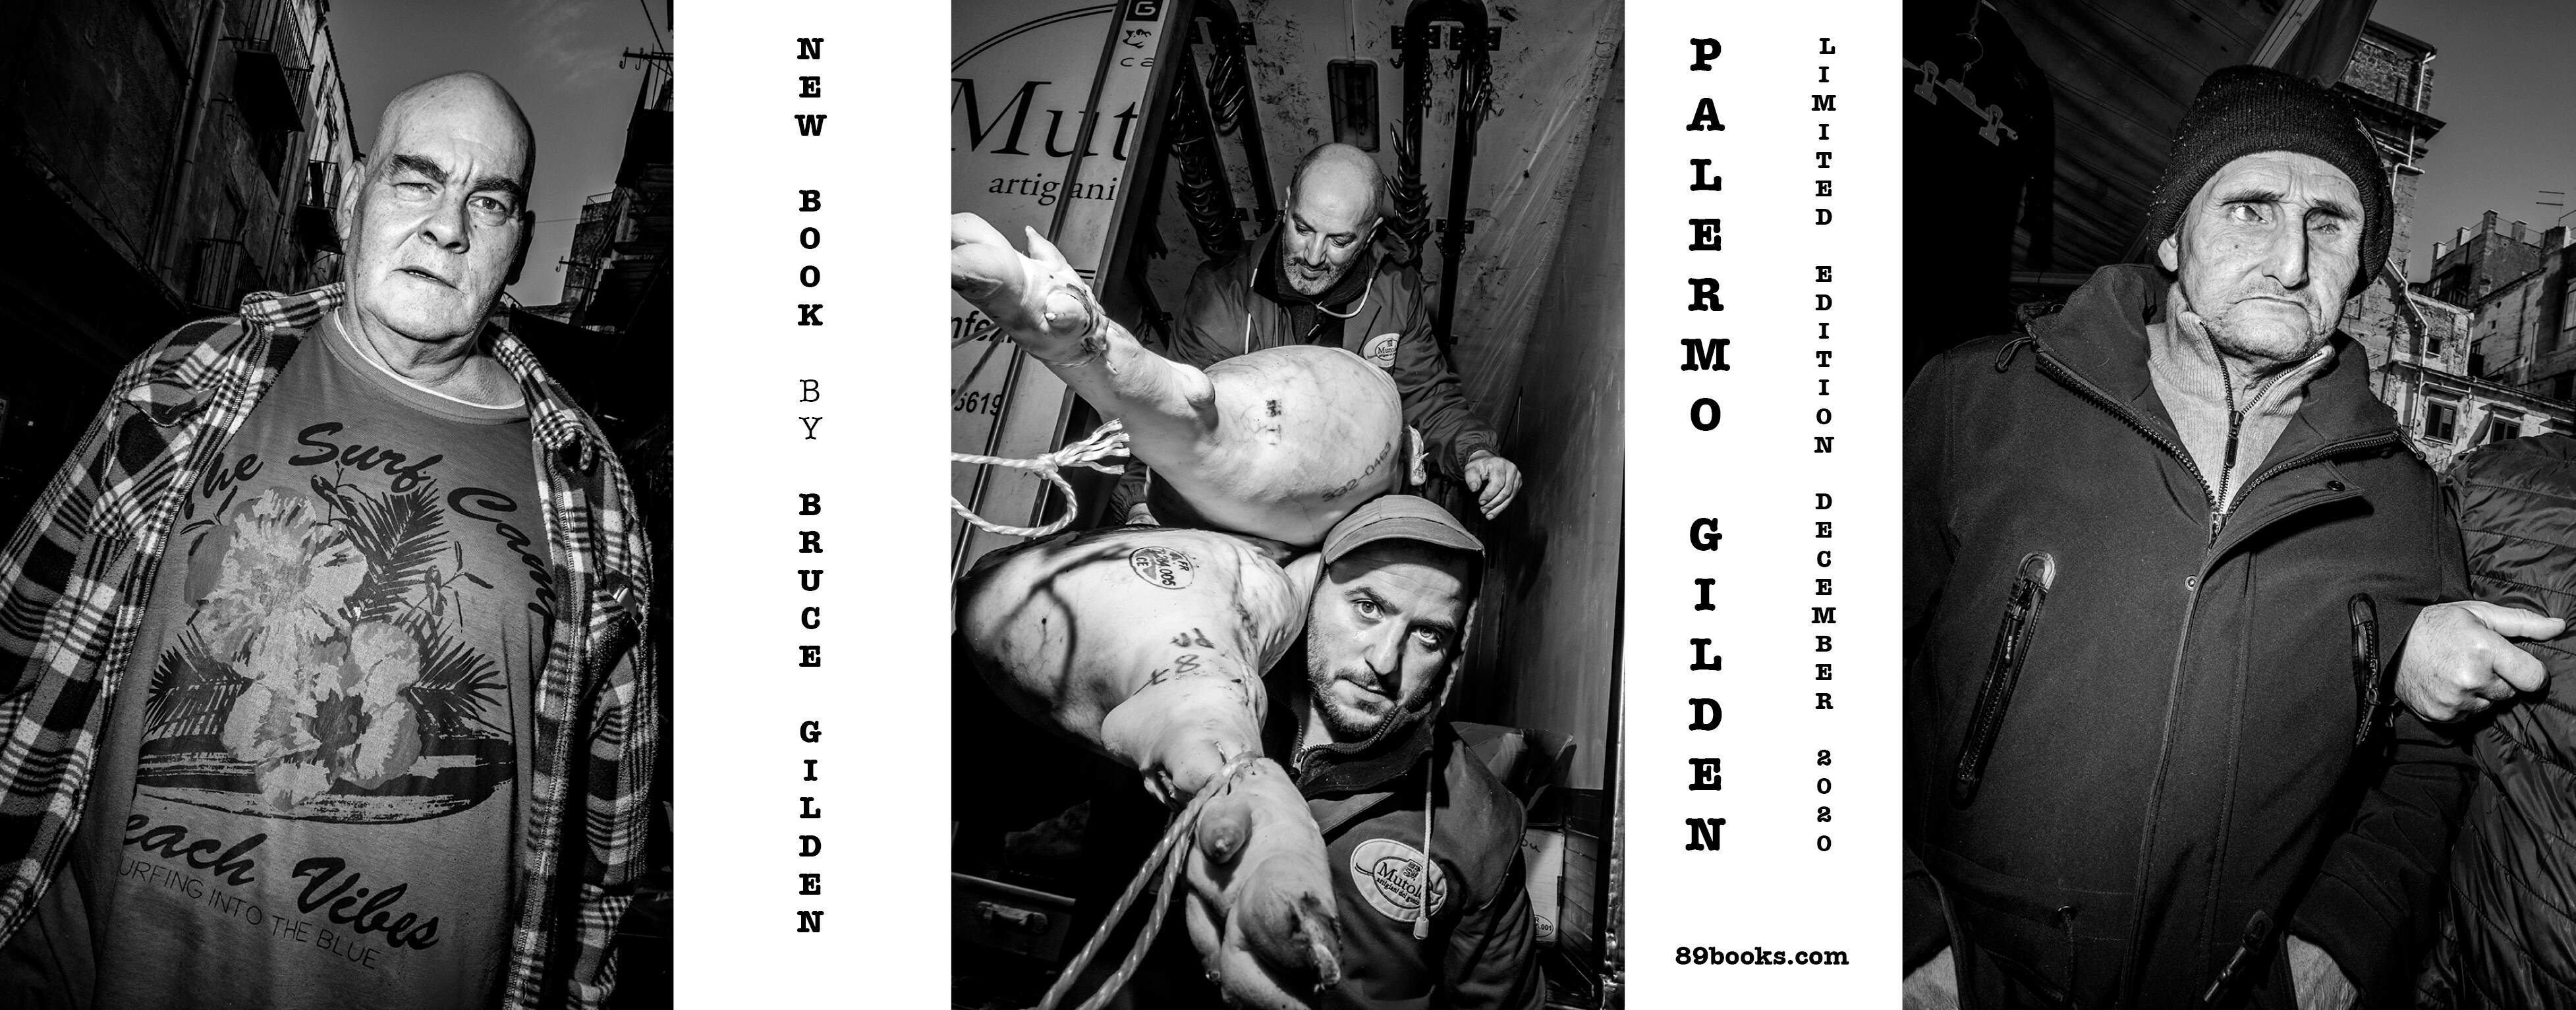 Palermo Gilden Limited Edition is available for pre-order